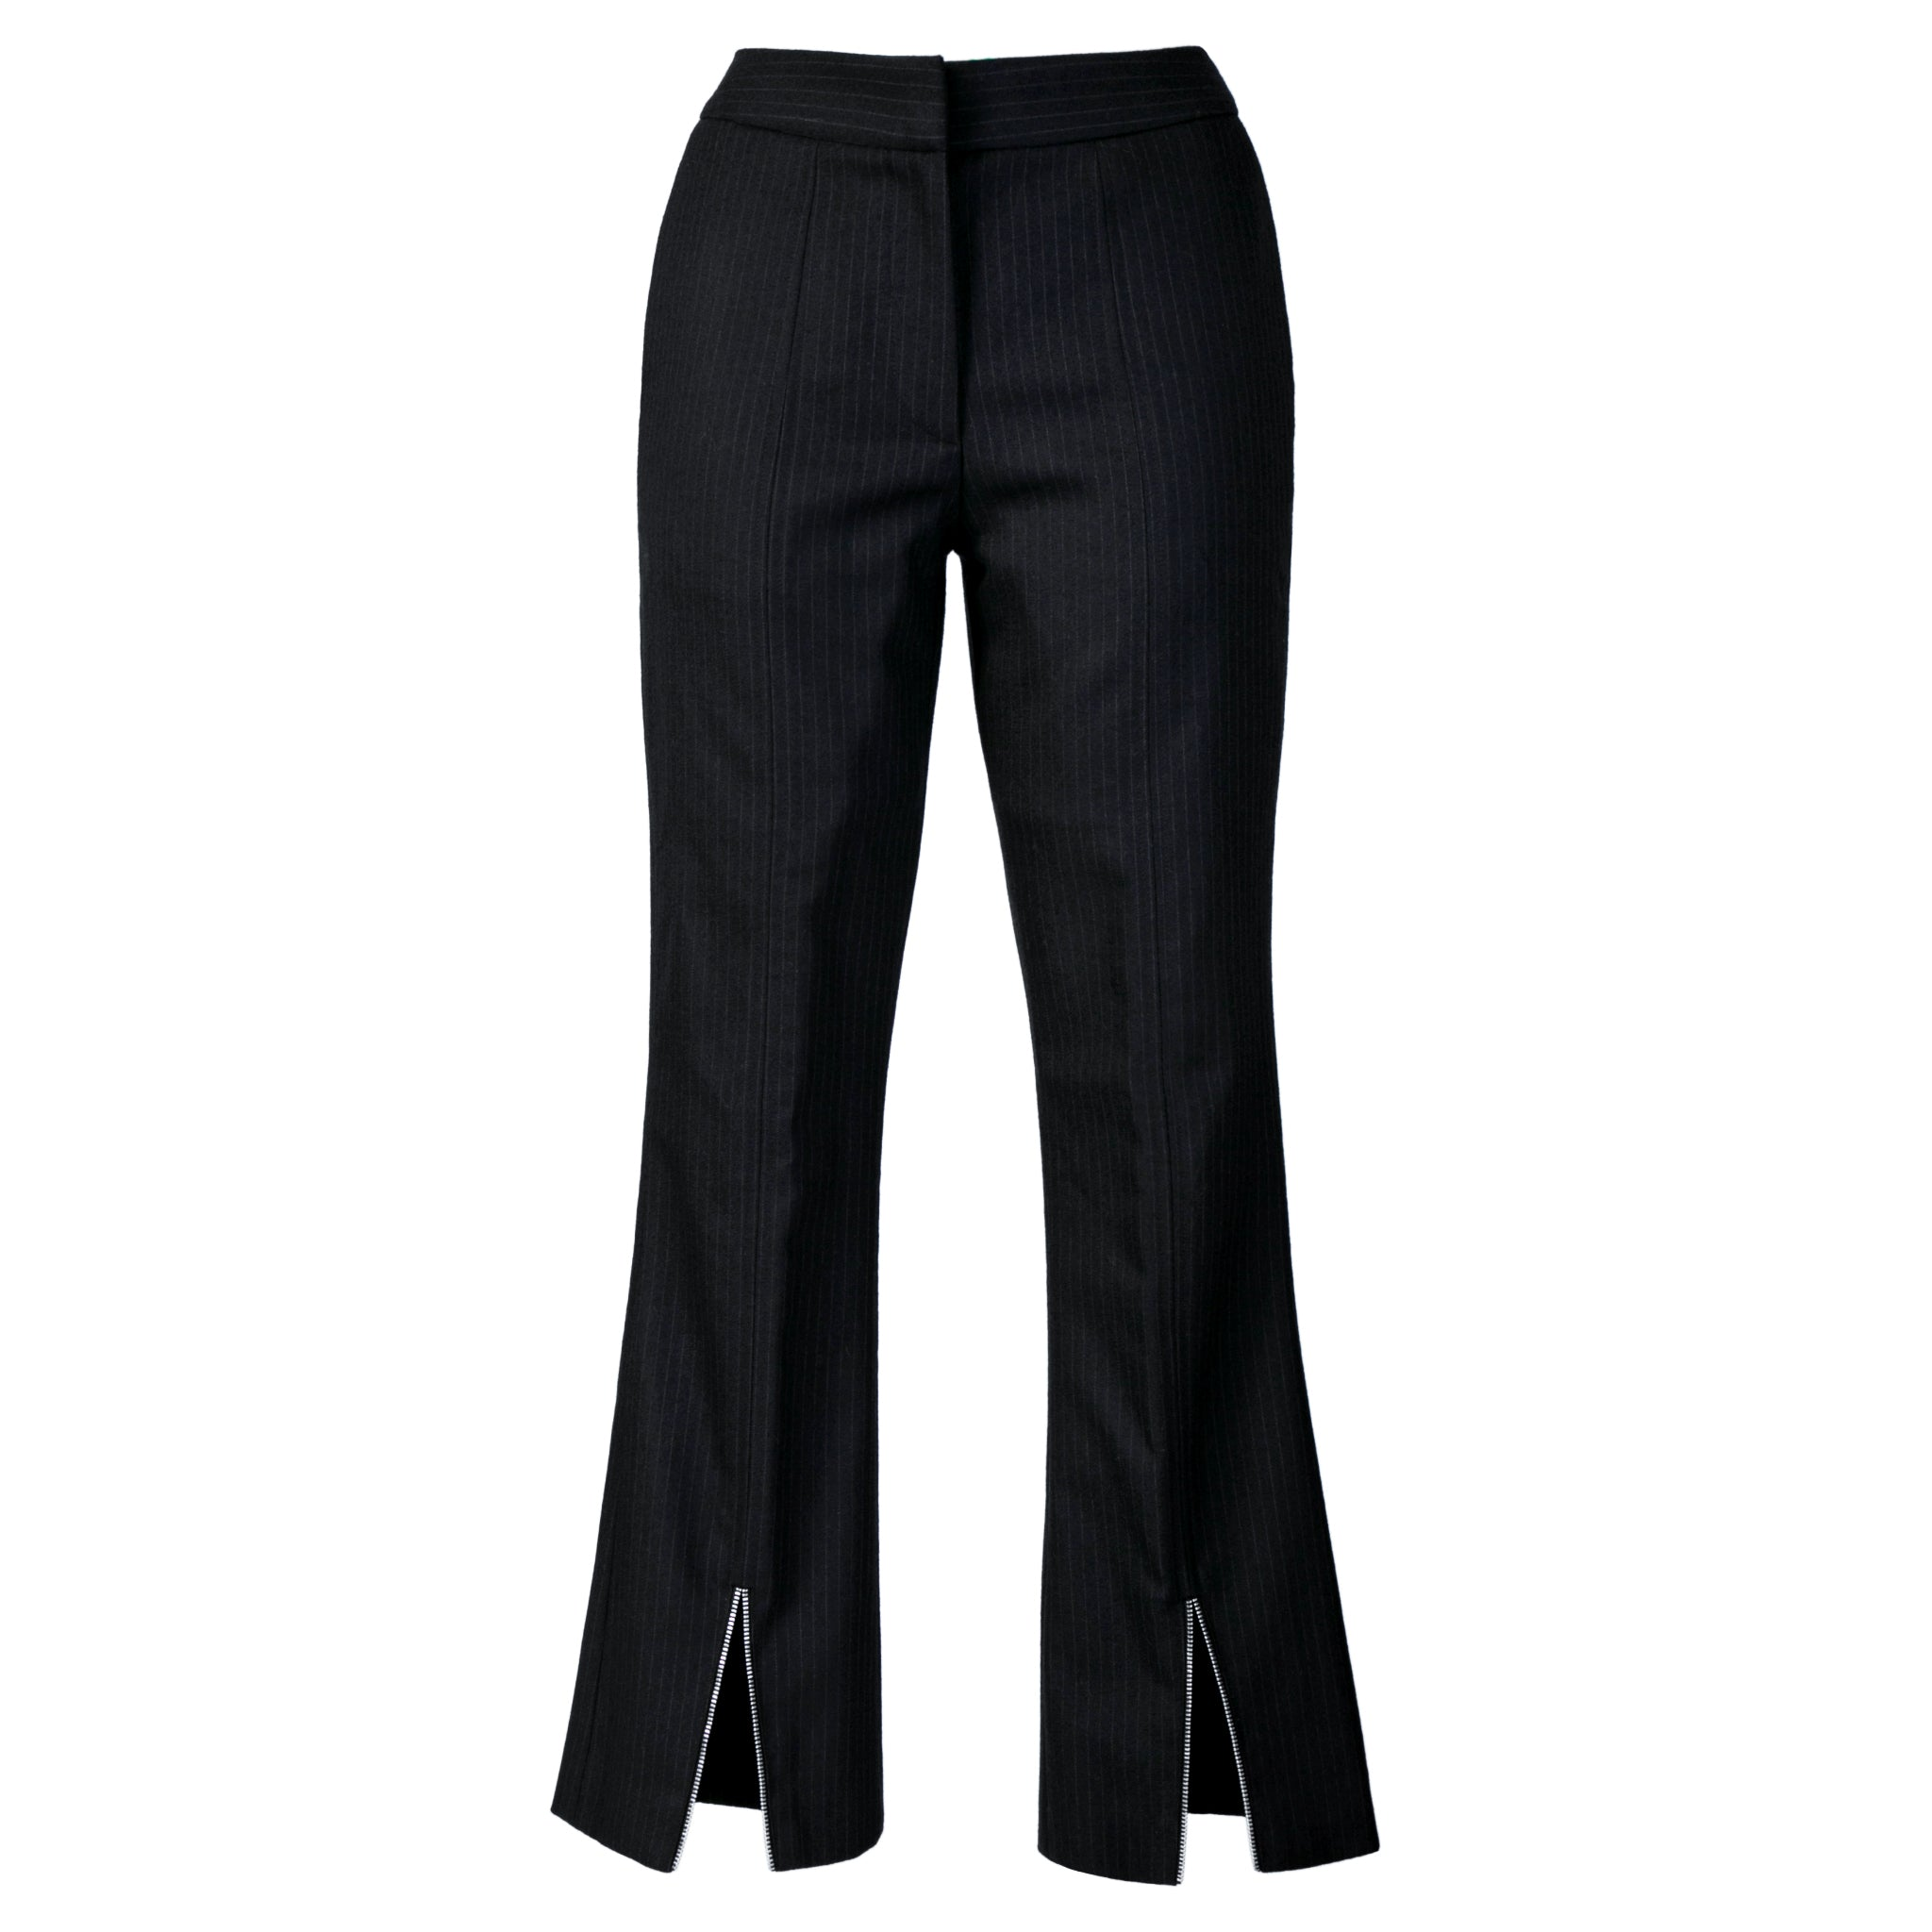 Empowered WMN Tailored Pants